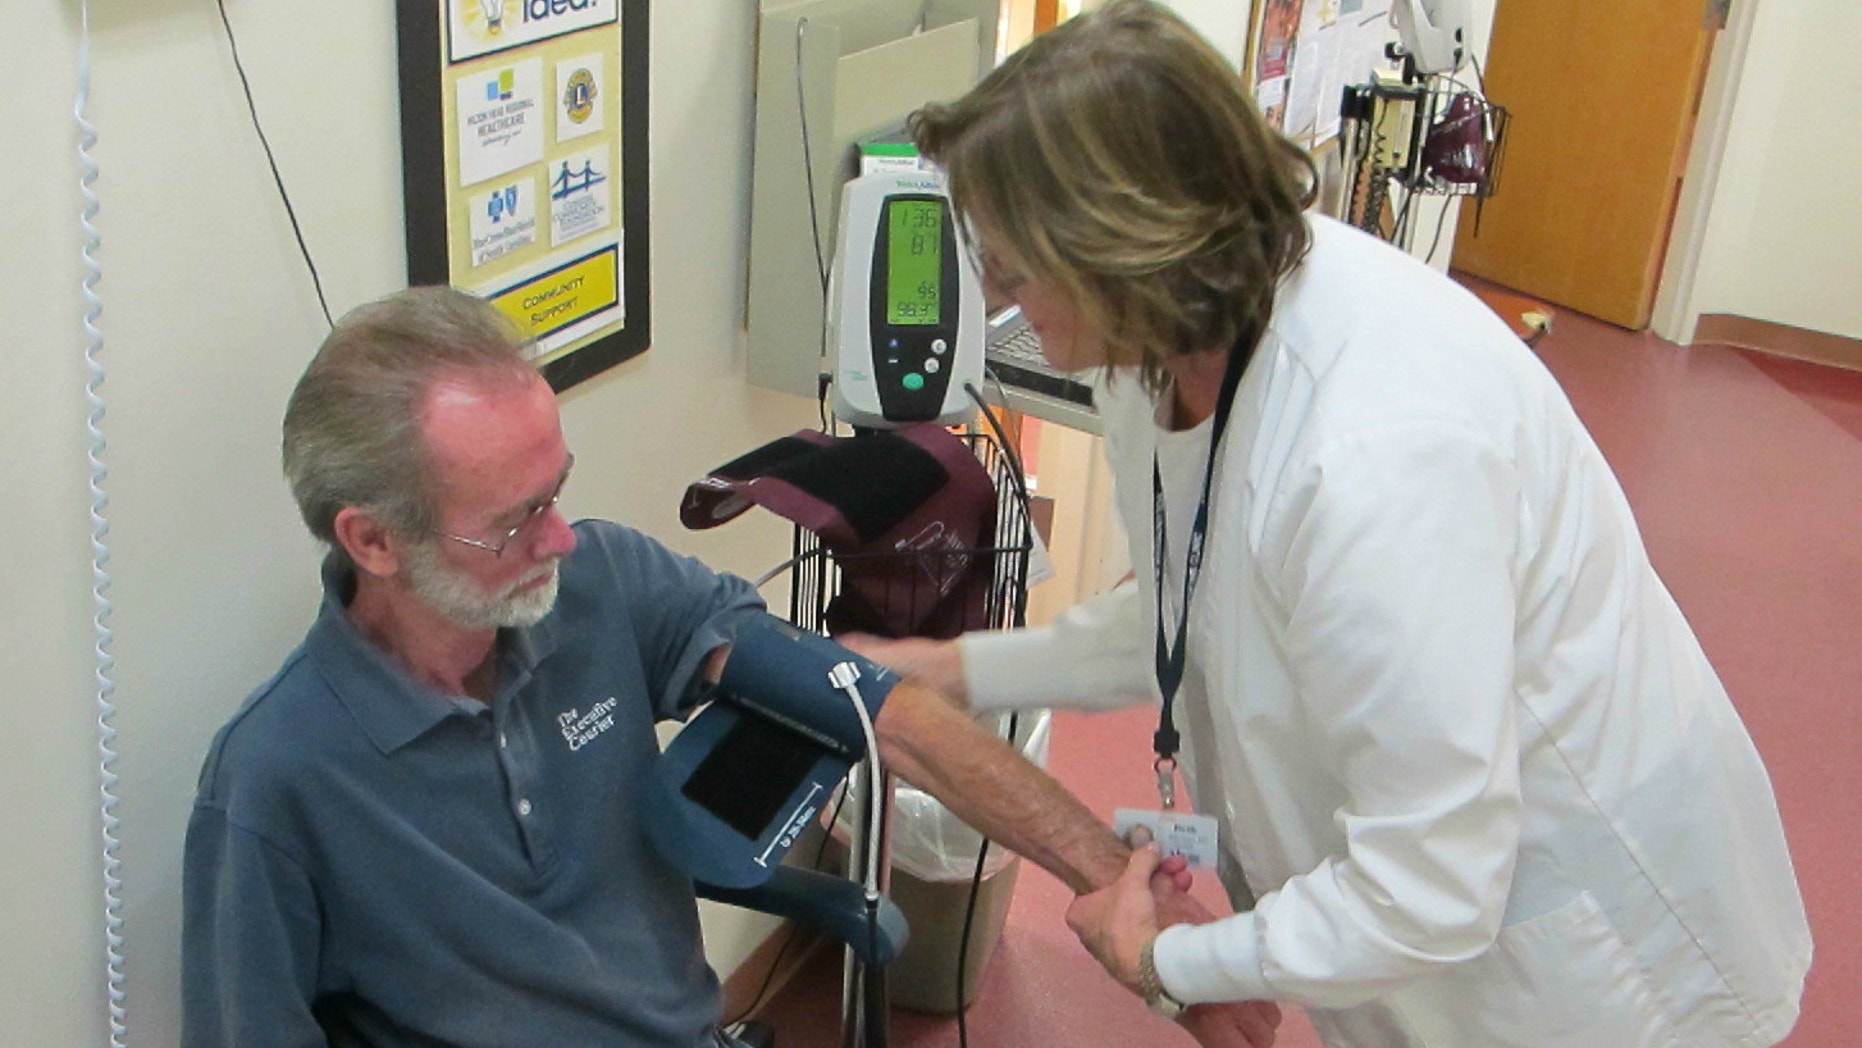 Jim Grant has his blood pressure taken by Beth Heyman at the Volunteers in Medicine Clinic on Hilton Head Island, S.C. The free clinic, staffed by retired physicians and nurses as well as volunteers, has become the model for 96 similar clinics nationwide. Last year, the nation's VIM clinics had 400,000 patient visits.